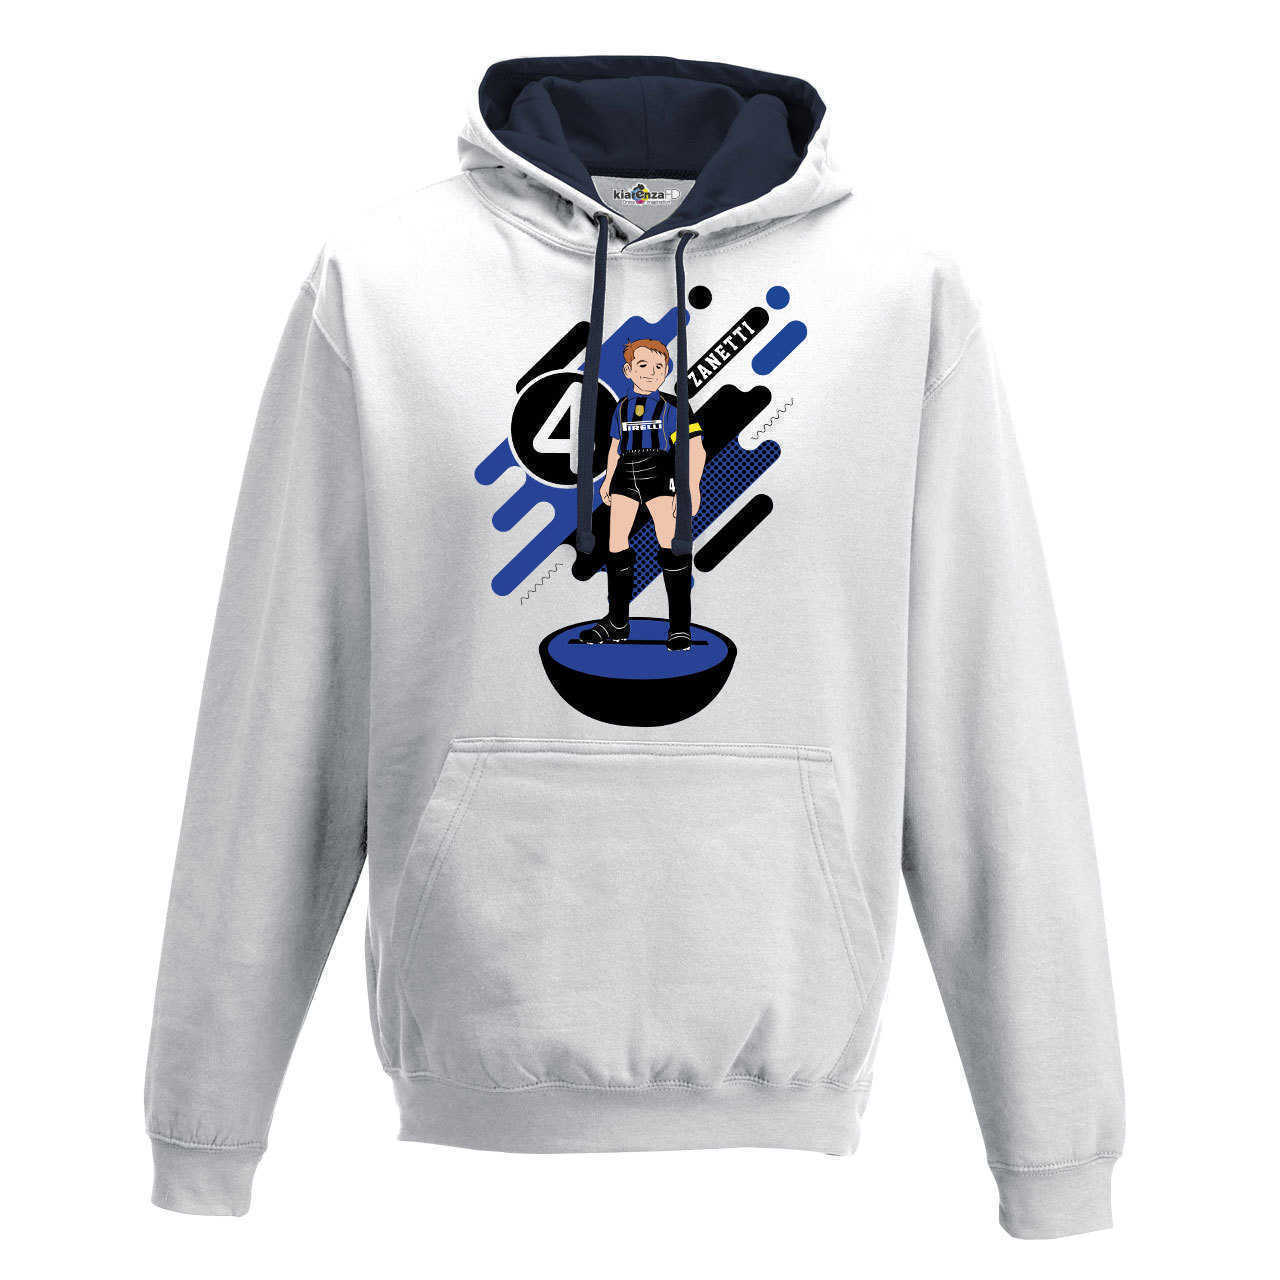 Hood Sweatshirt Bico <font><b>Soccer</b></font> Manga Zanetti <font><b>Inter</b></font> <font><b>Milan</b></font> Legend Spoof Subbuteo Holly and Benji S image